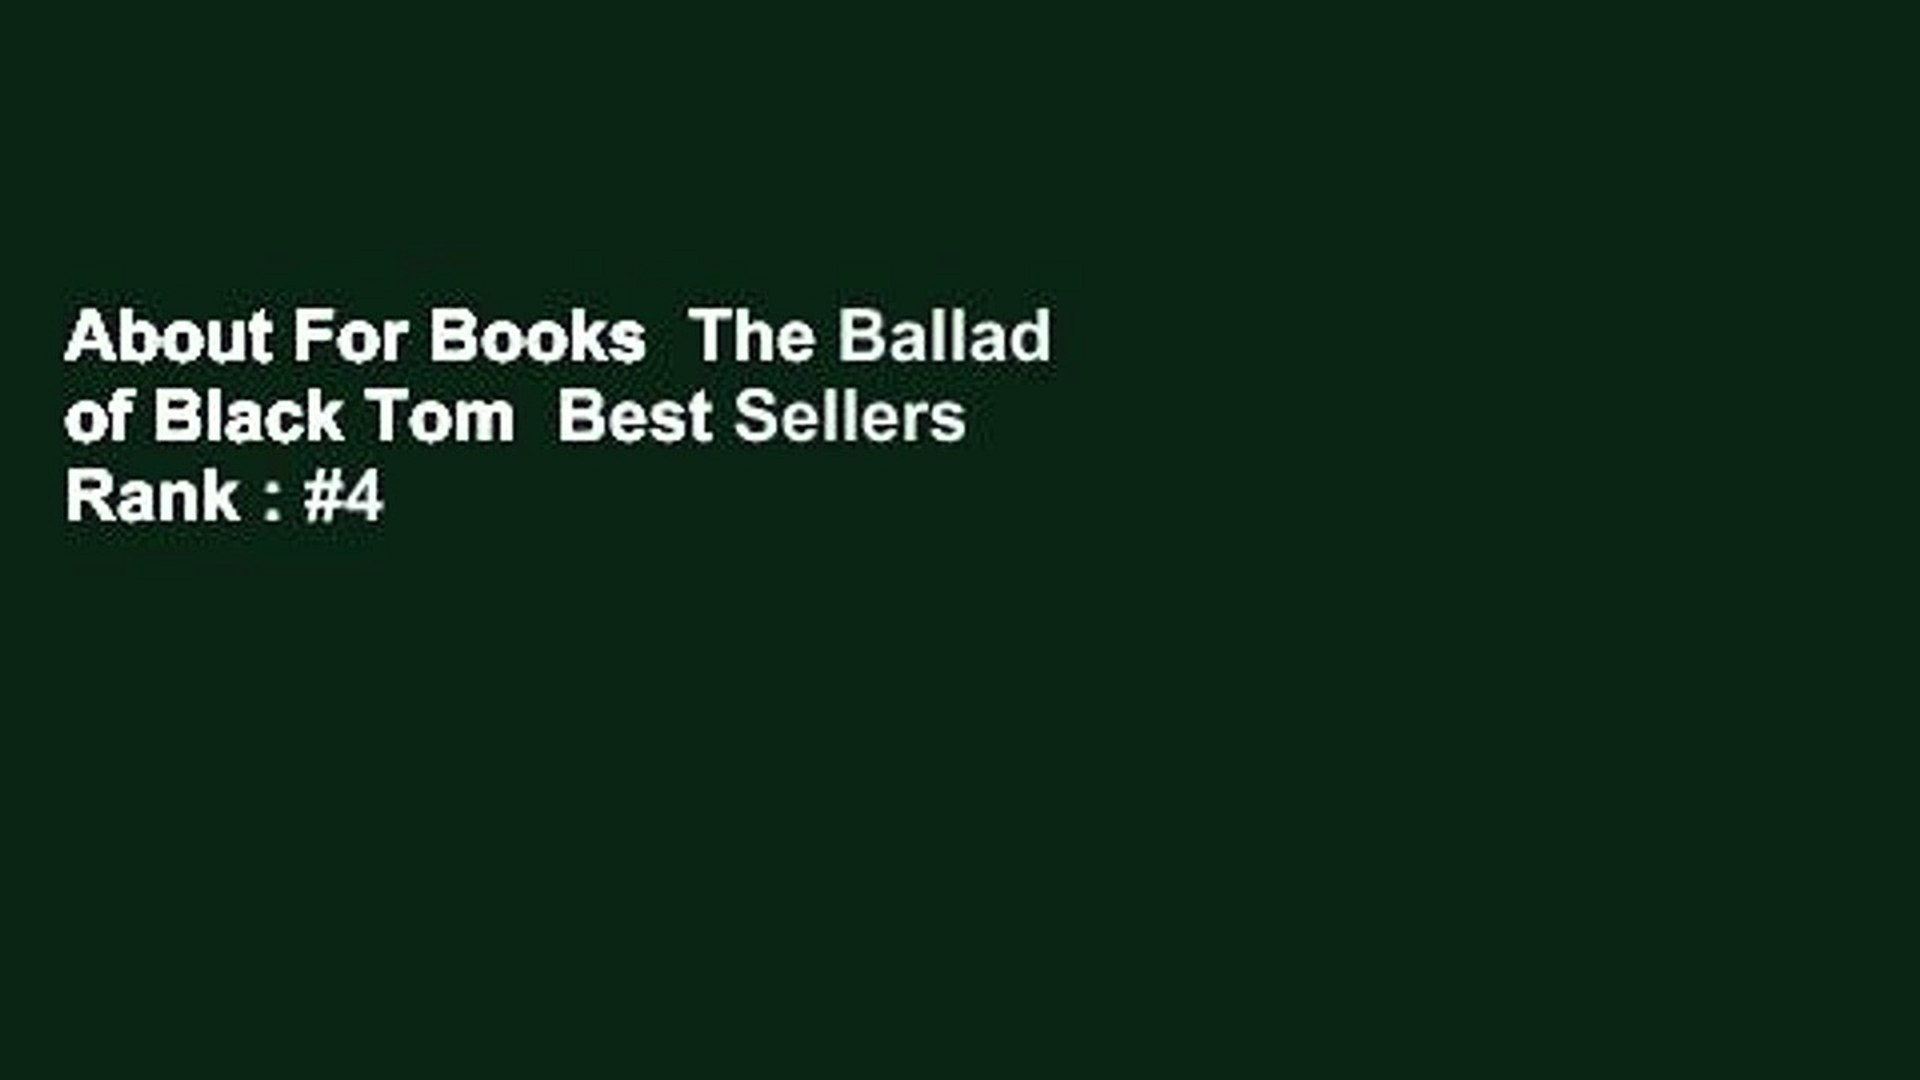 About For Books  The Ballad of Black Tom  Best Sellers Rank : #4